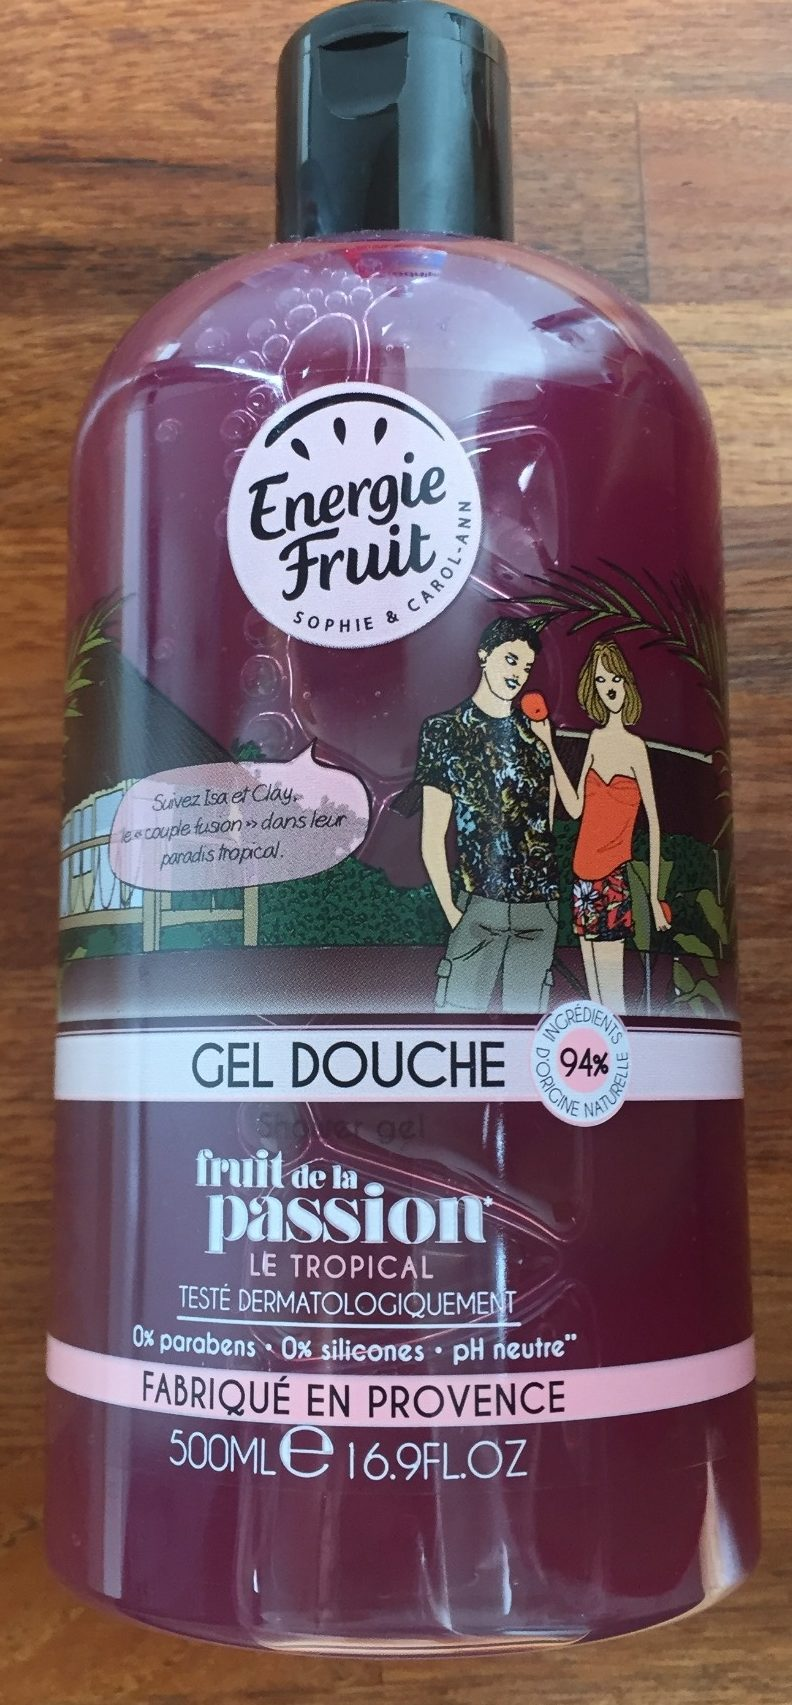 Gel Douche Fruit de la passion - Product - fr